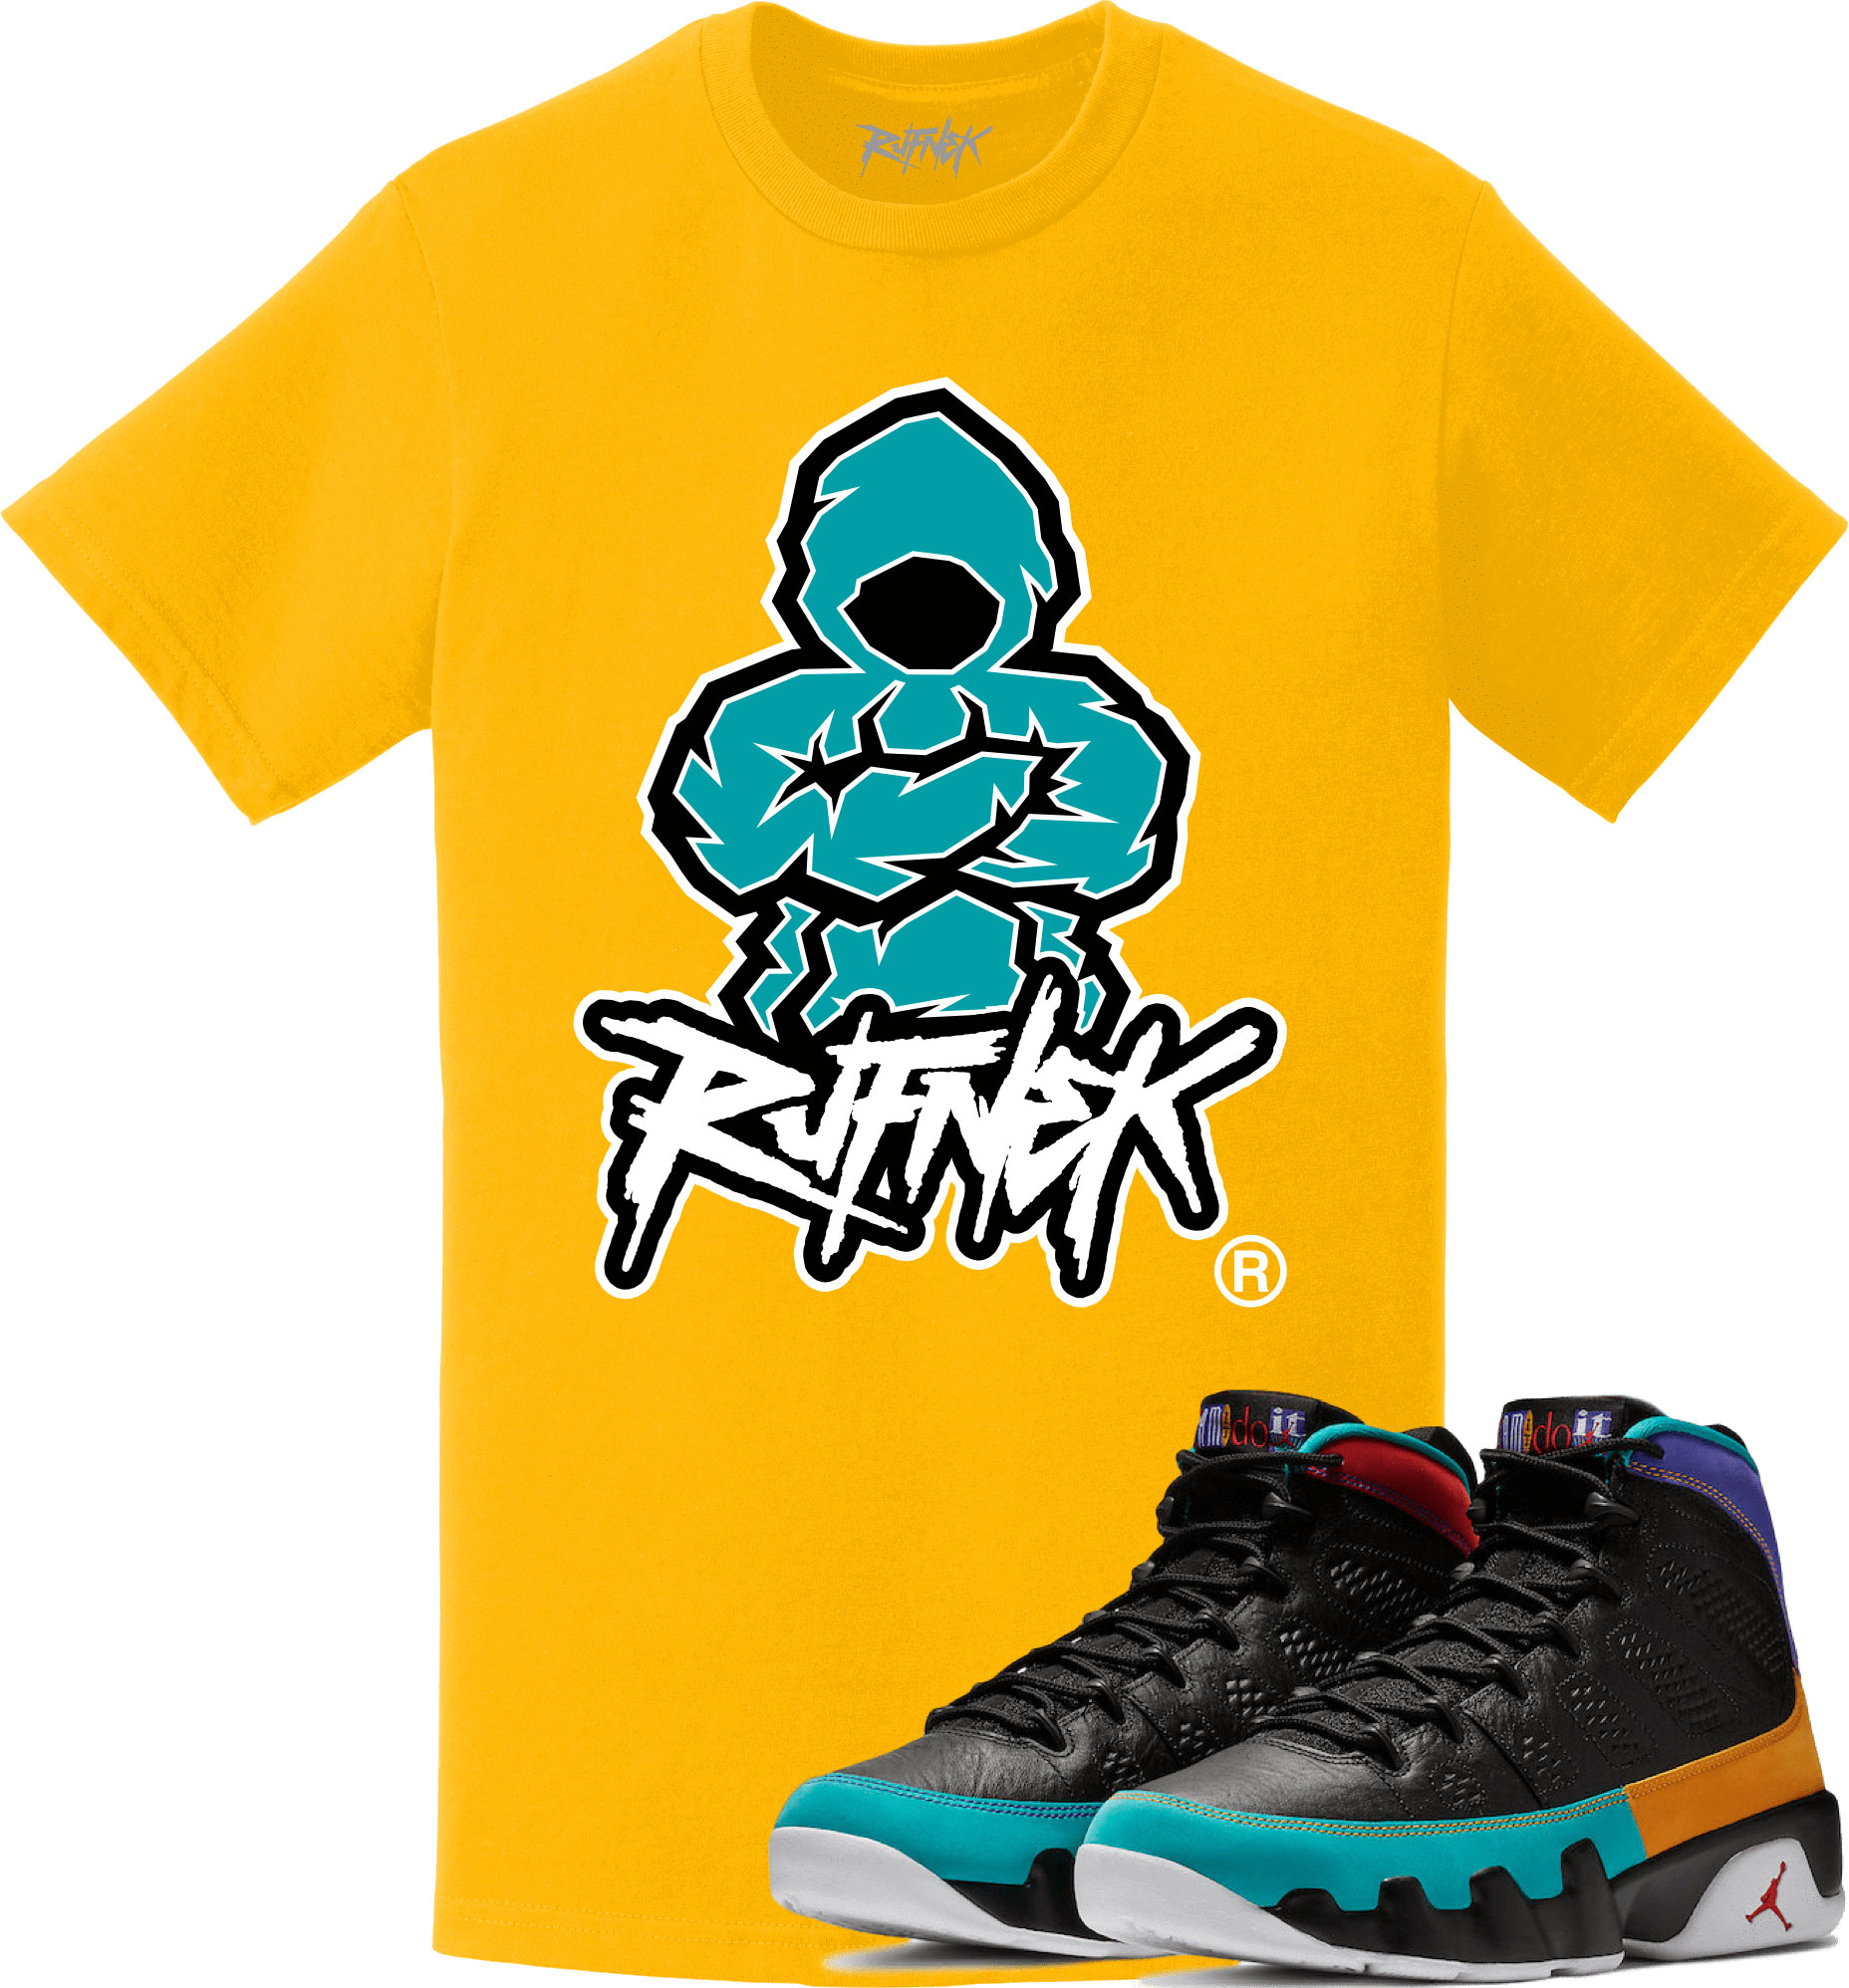 jordan-9-dream-it-do-it-sneaker-match-tee-shirt-4